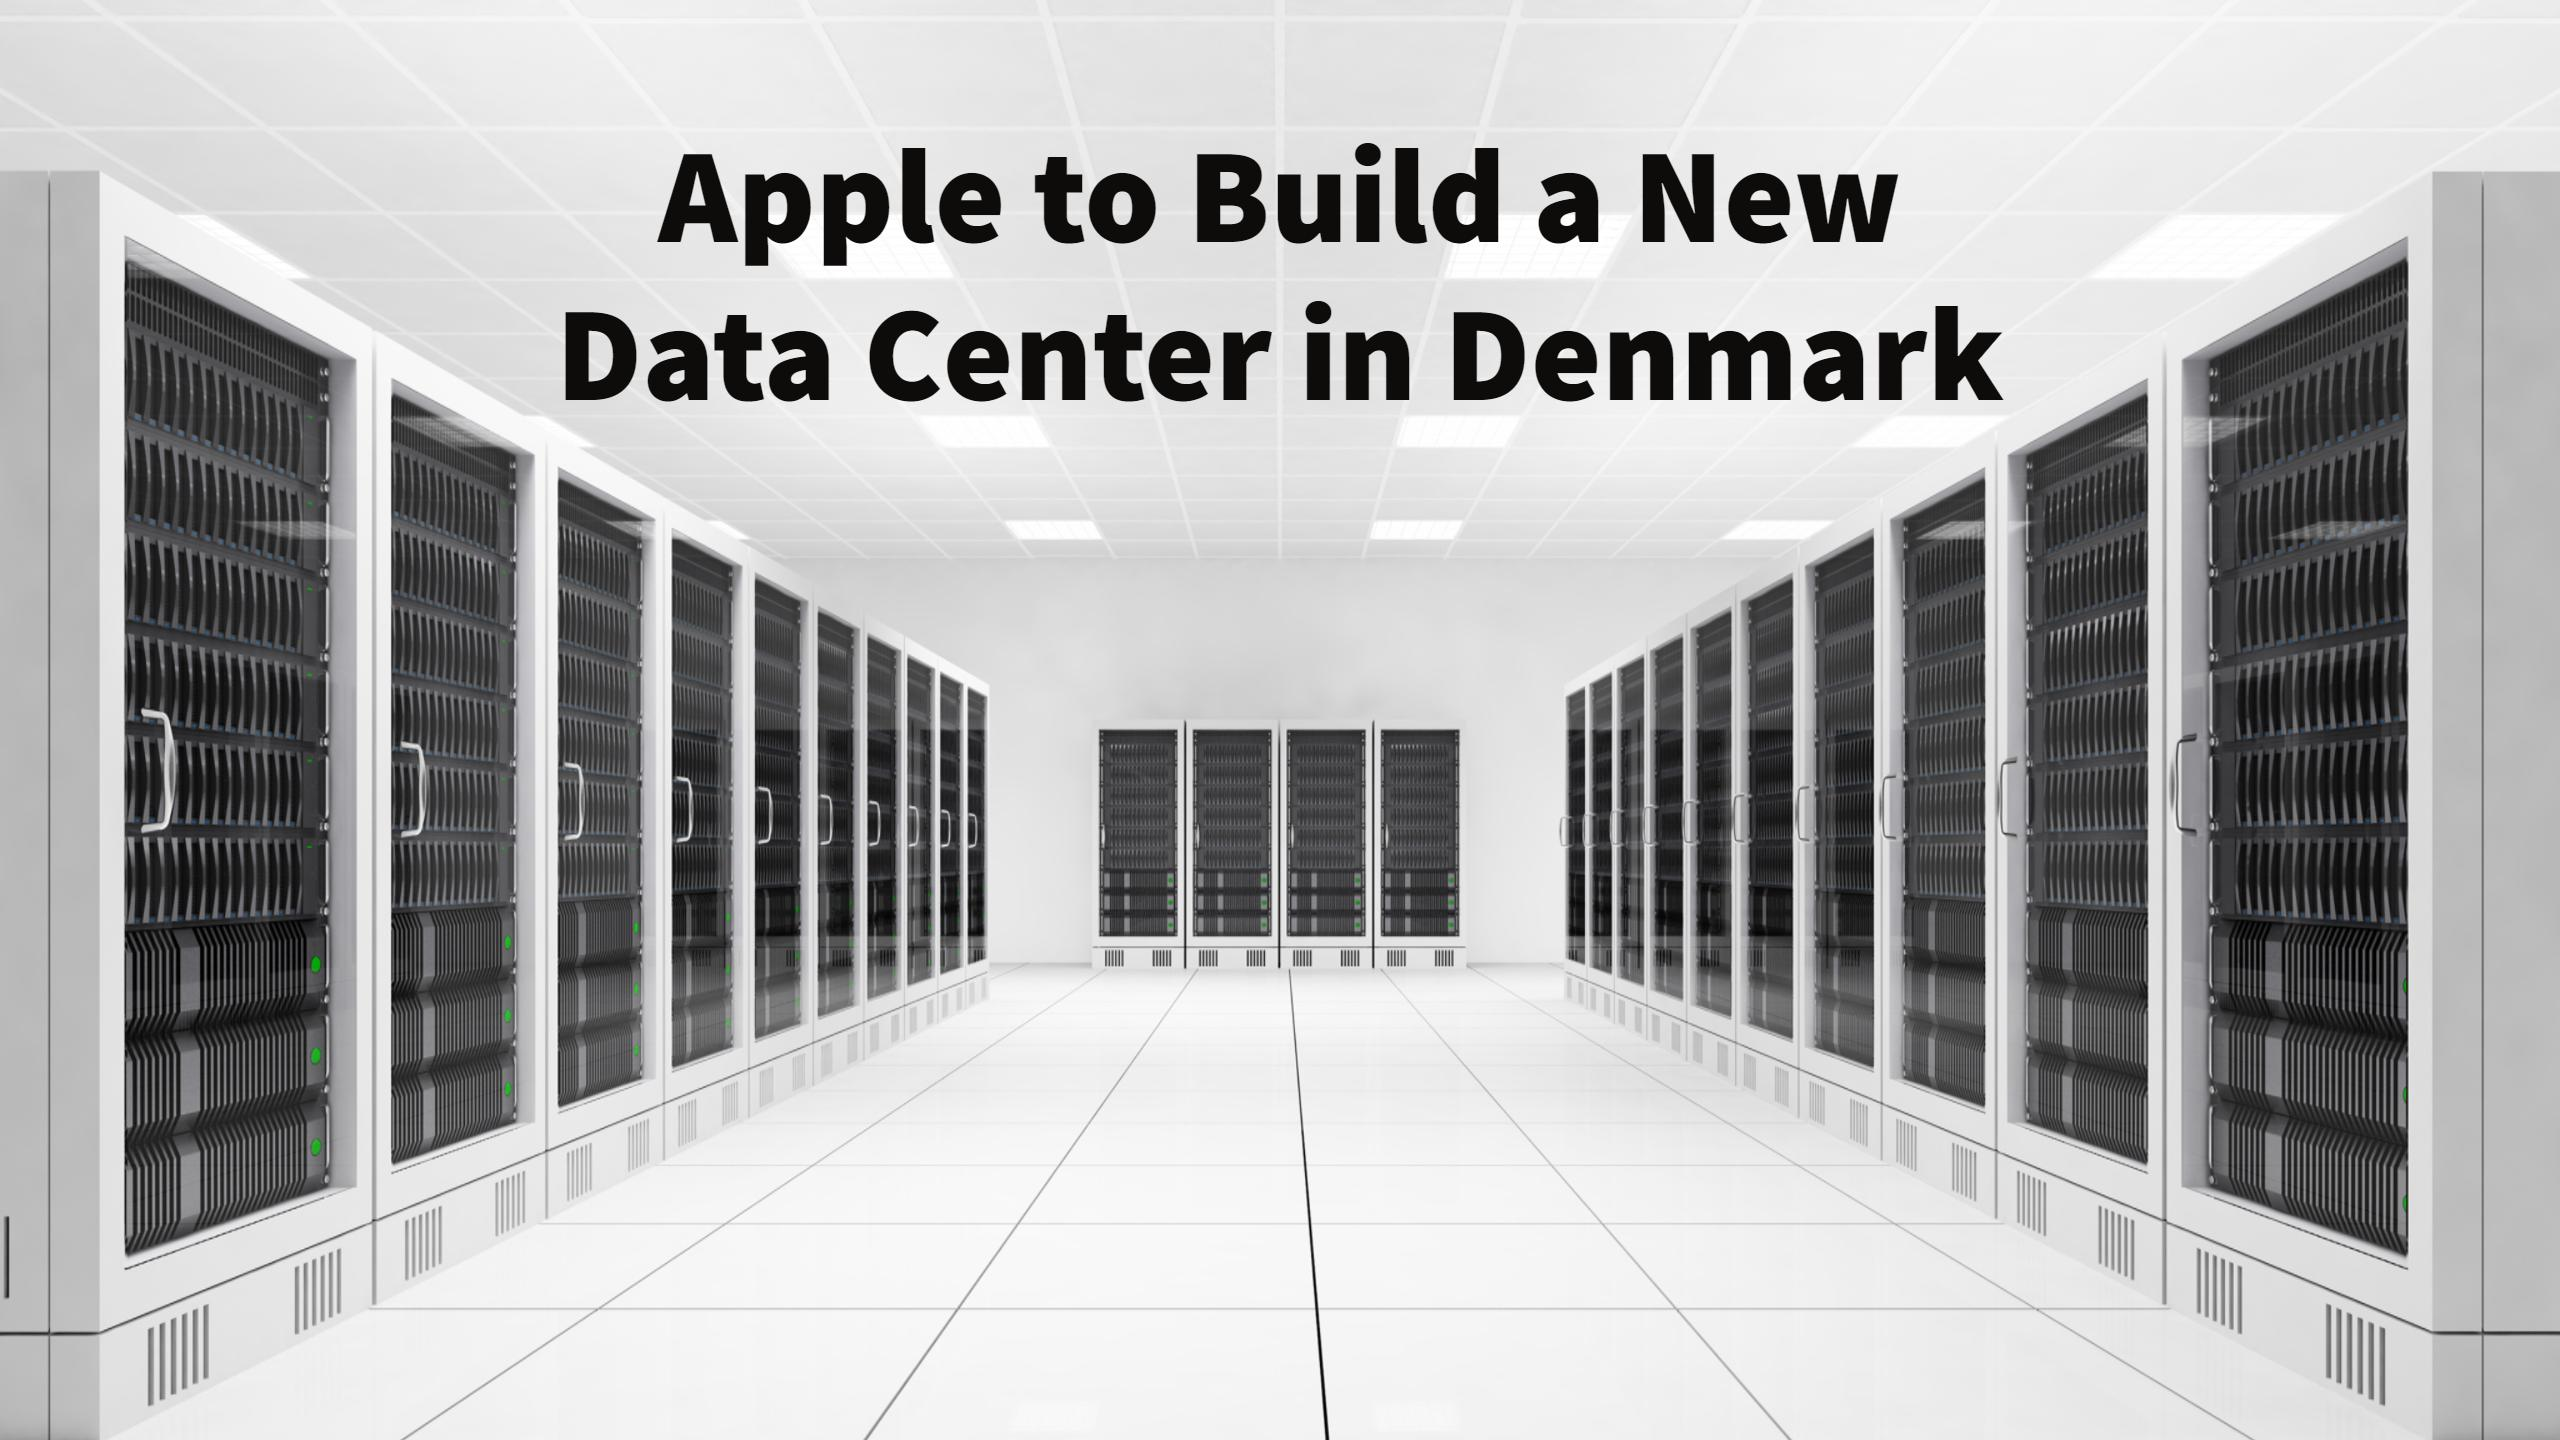 Apple to Build a New Data Center in Denmark